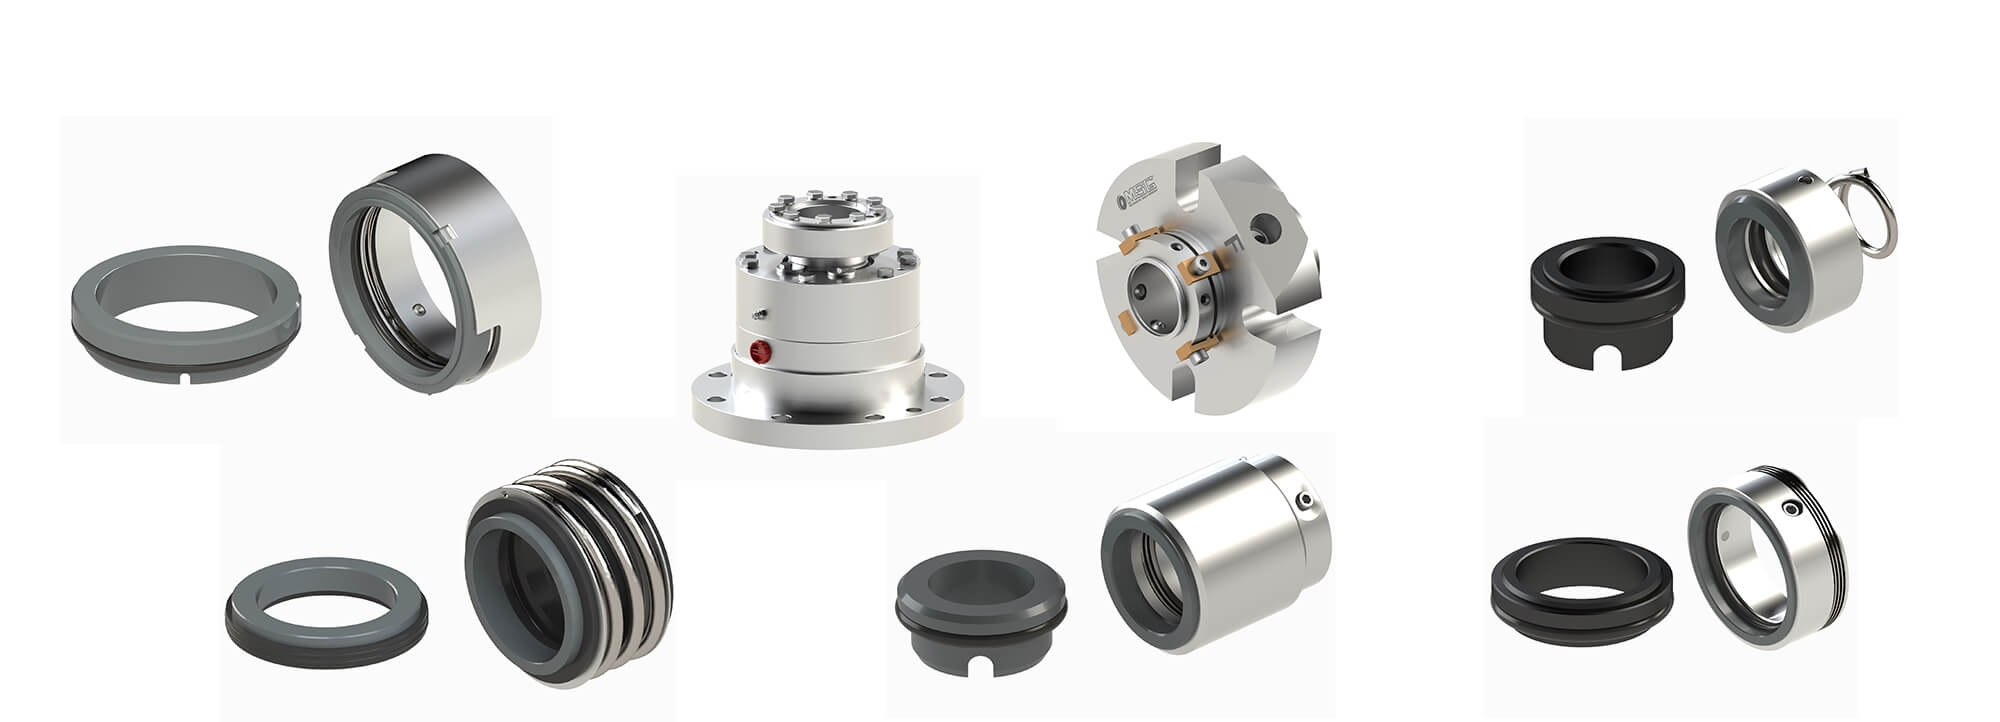 High-quality mechanical seals